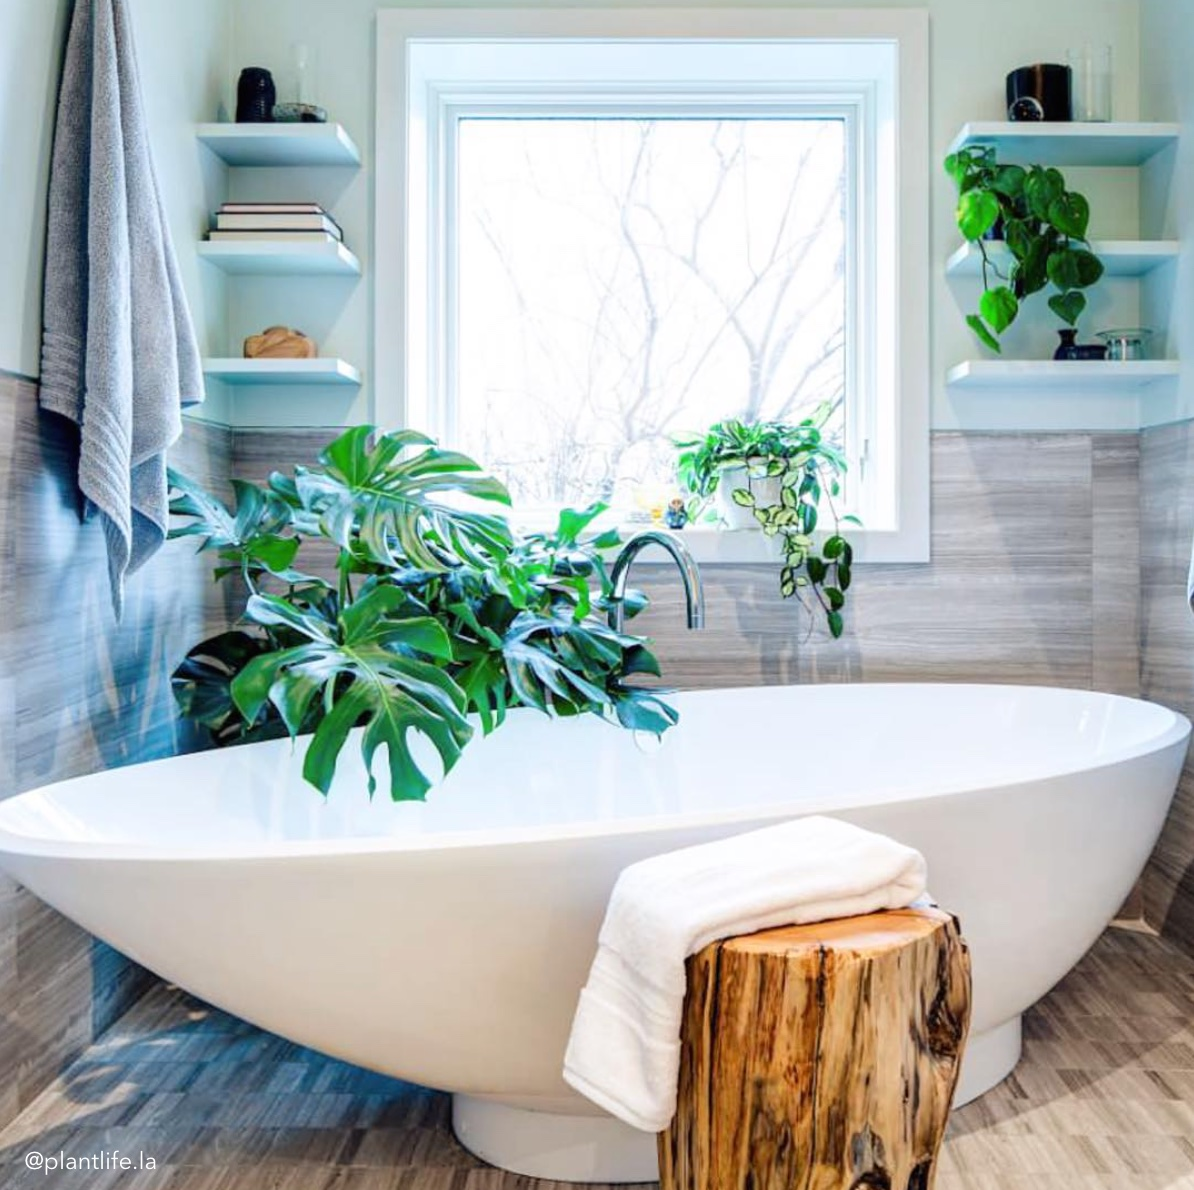 Best Indoor Plants for Bathrooms (+ Interior Design Inspo!) | Tree on plants for the porch, plants for the office, plants in walk-in shower, plants for the pool, plants for hallway, plants for your office, plants for the house, plants for the bedroom, plants for home, indoor gardens bathroom, plants for the front, plants for water, plants for bees, plants for the sitting room, plants for shower, plants for windows, plants for shaded areas, plants for garage, plants for the laundry room, plants for decorating,